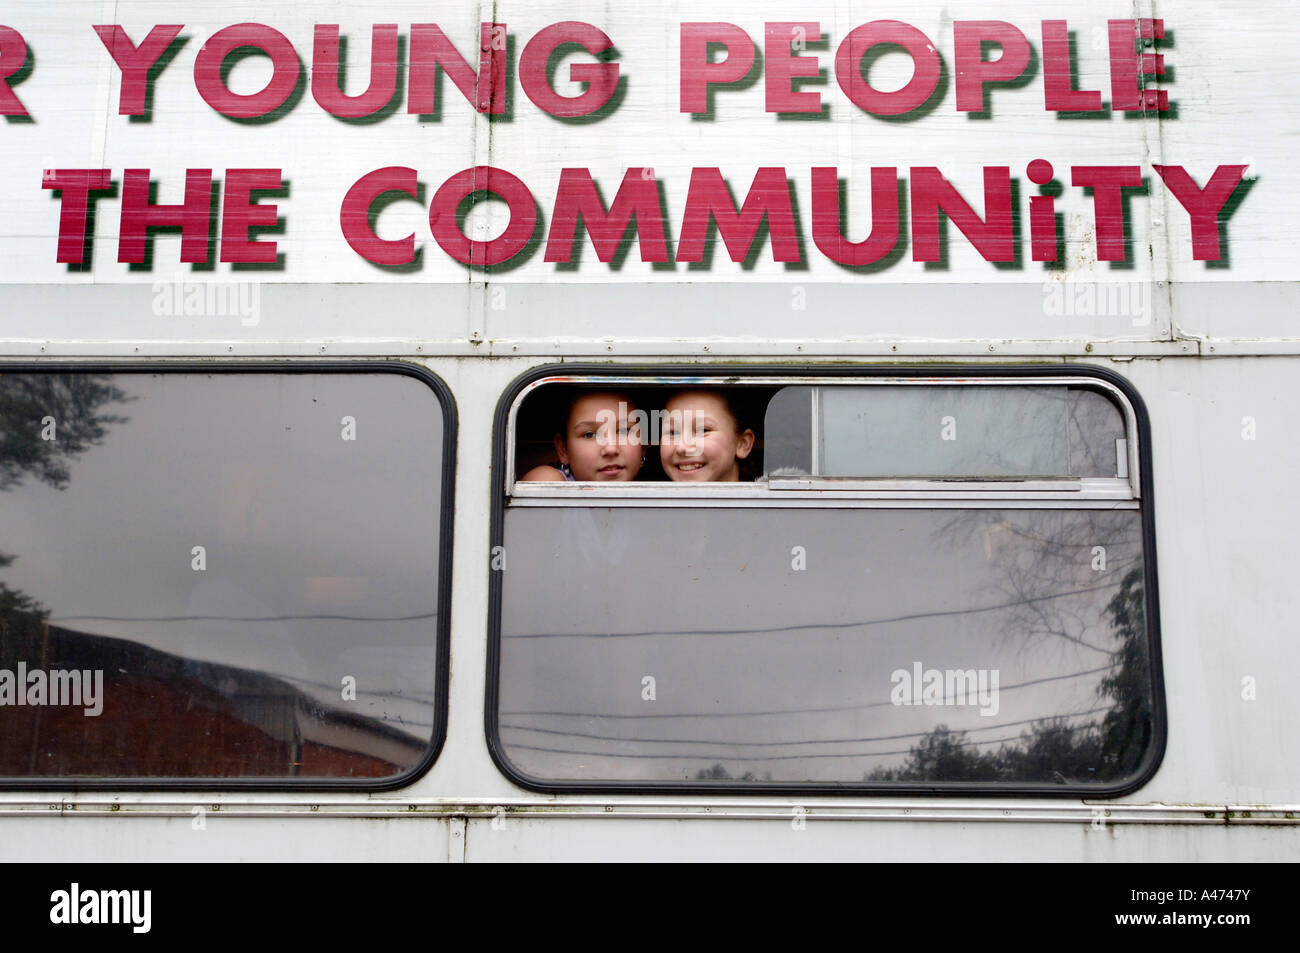 Two cheeky smiling traveller girls look out of the window of a community bus - Stock Image